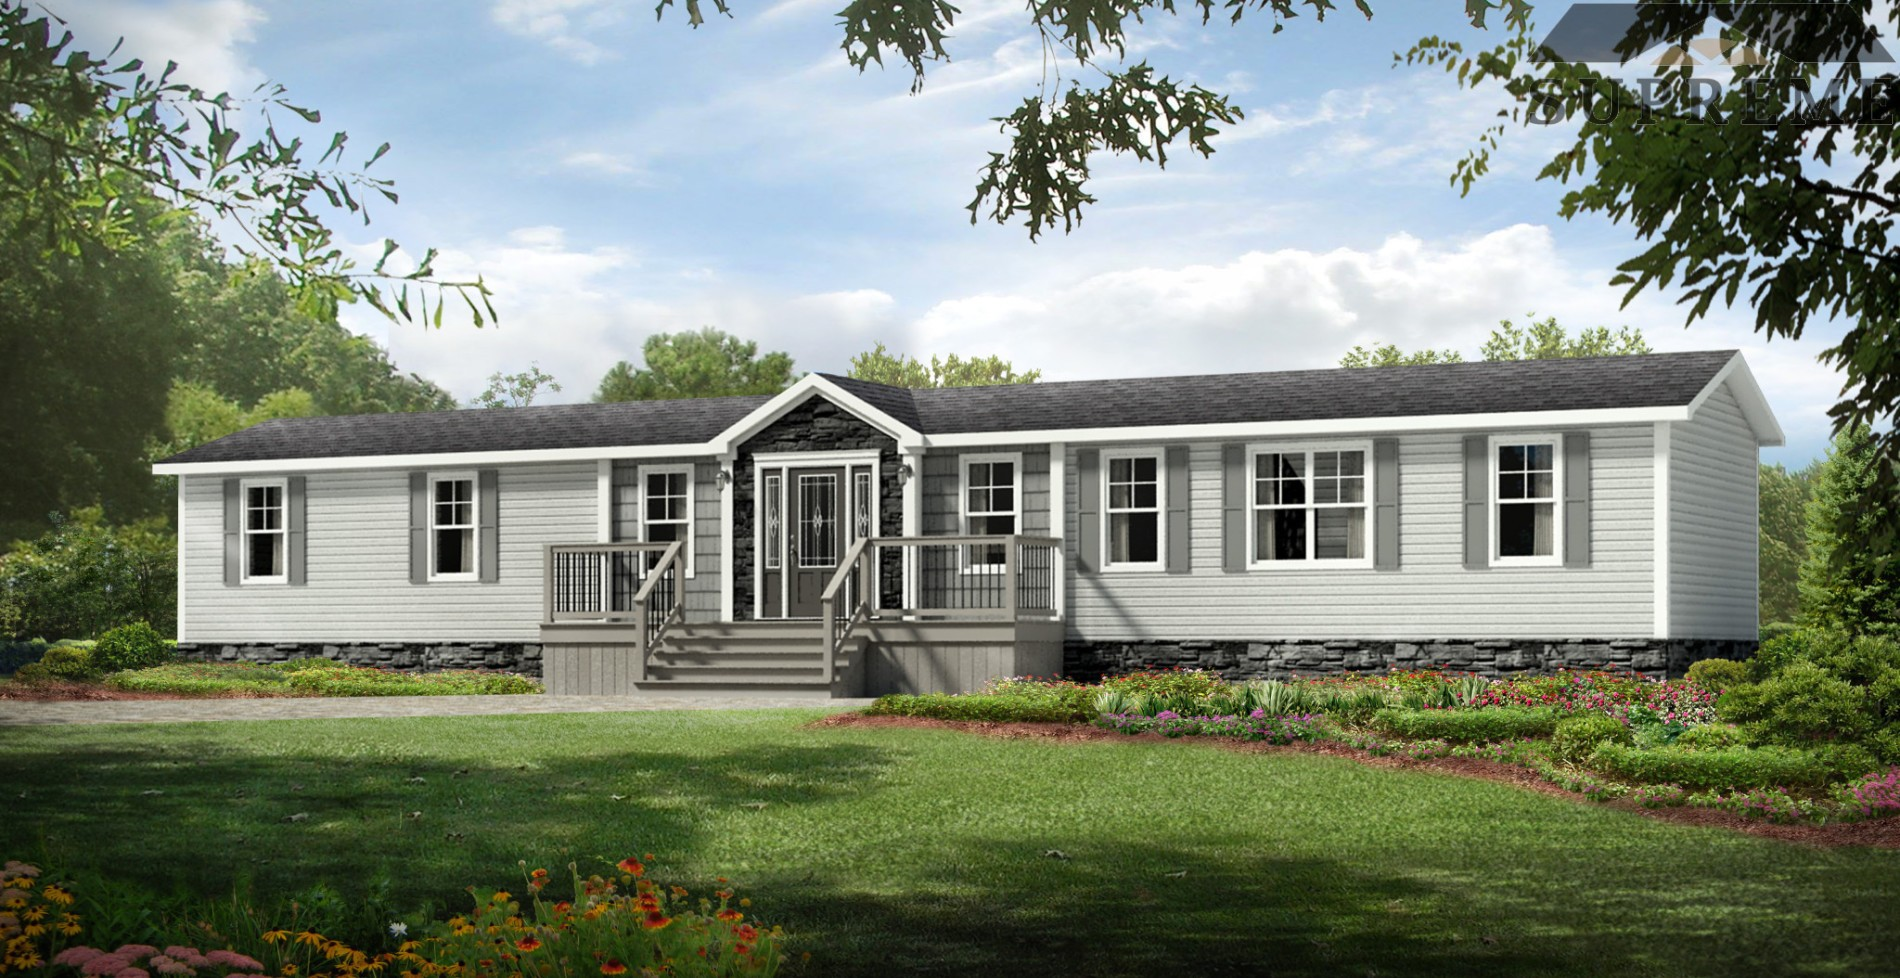 New Homes PEI, Mini Homes PEI, Supreme Homes PEI